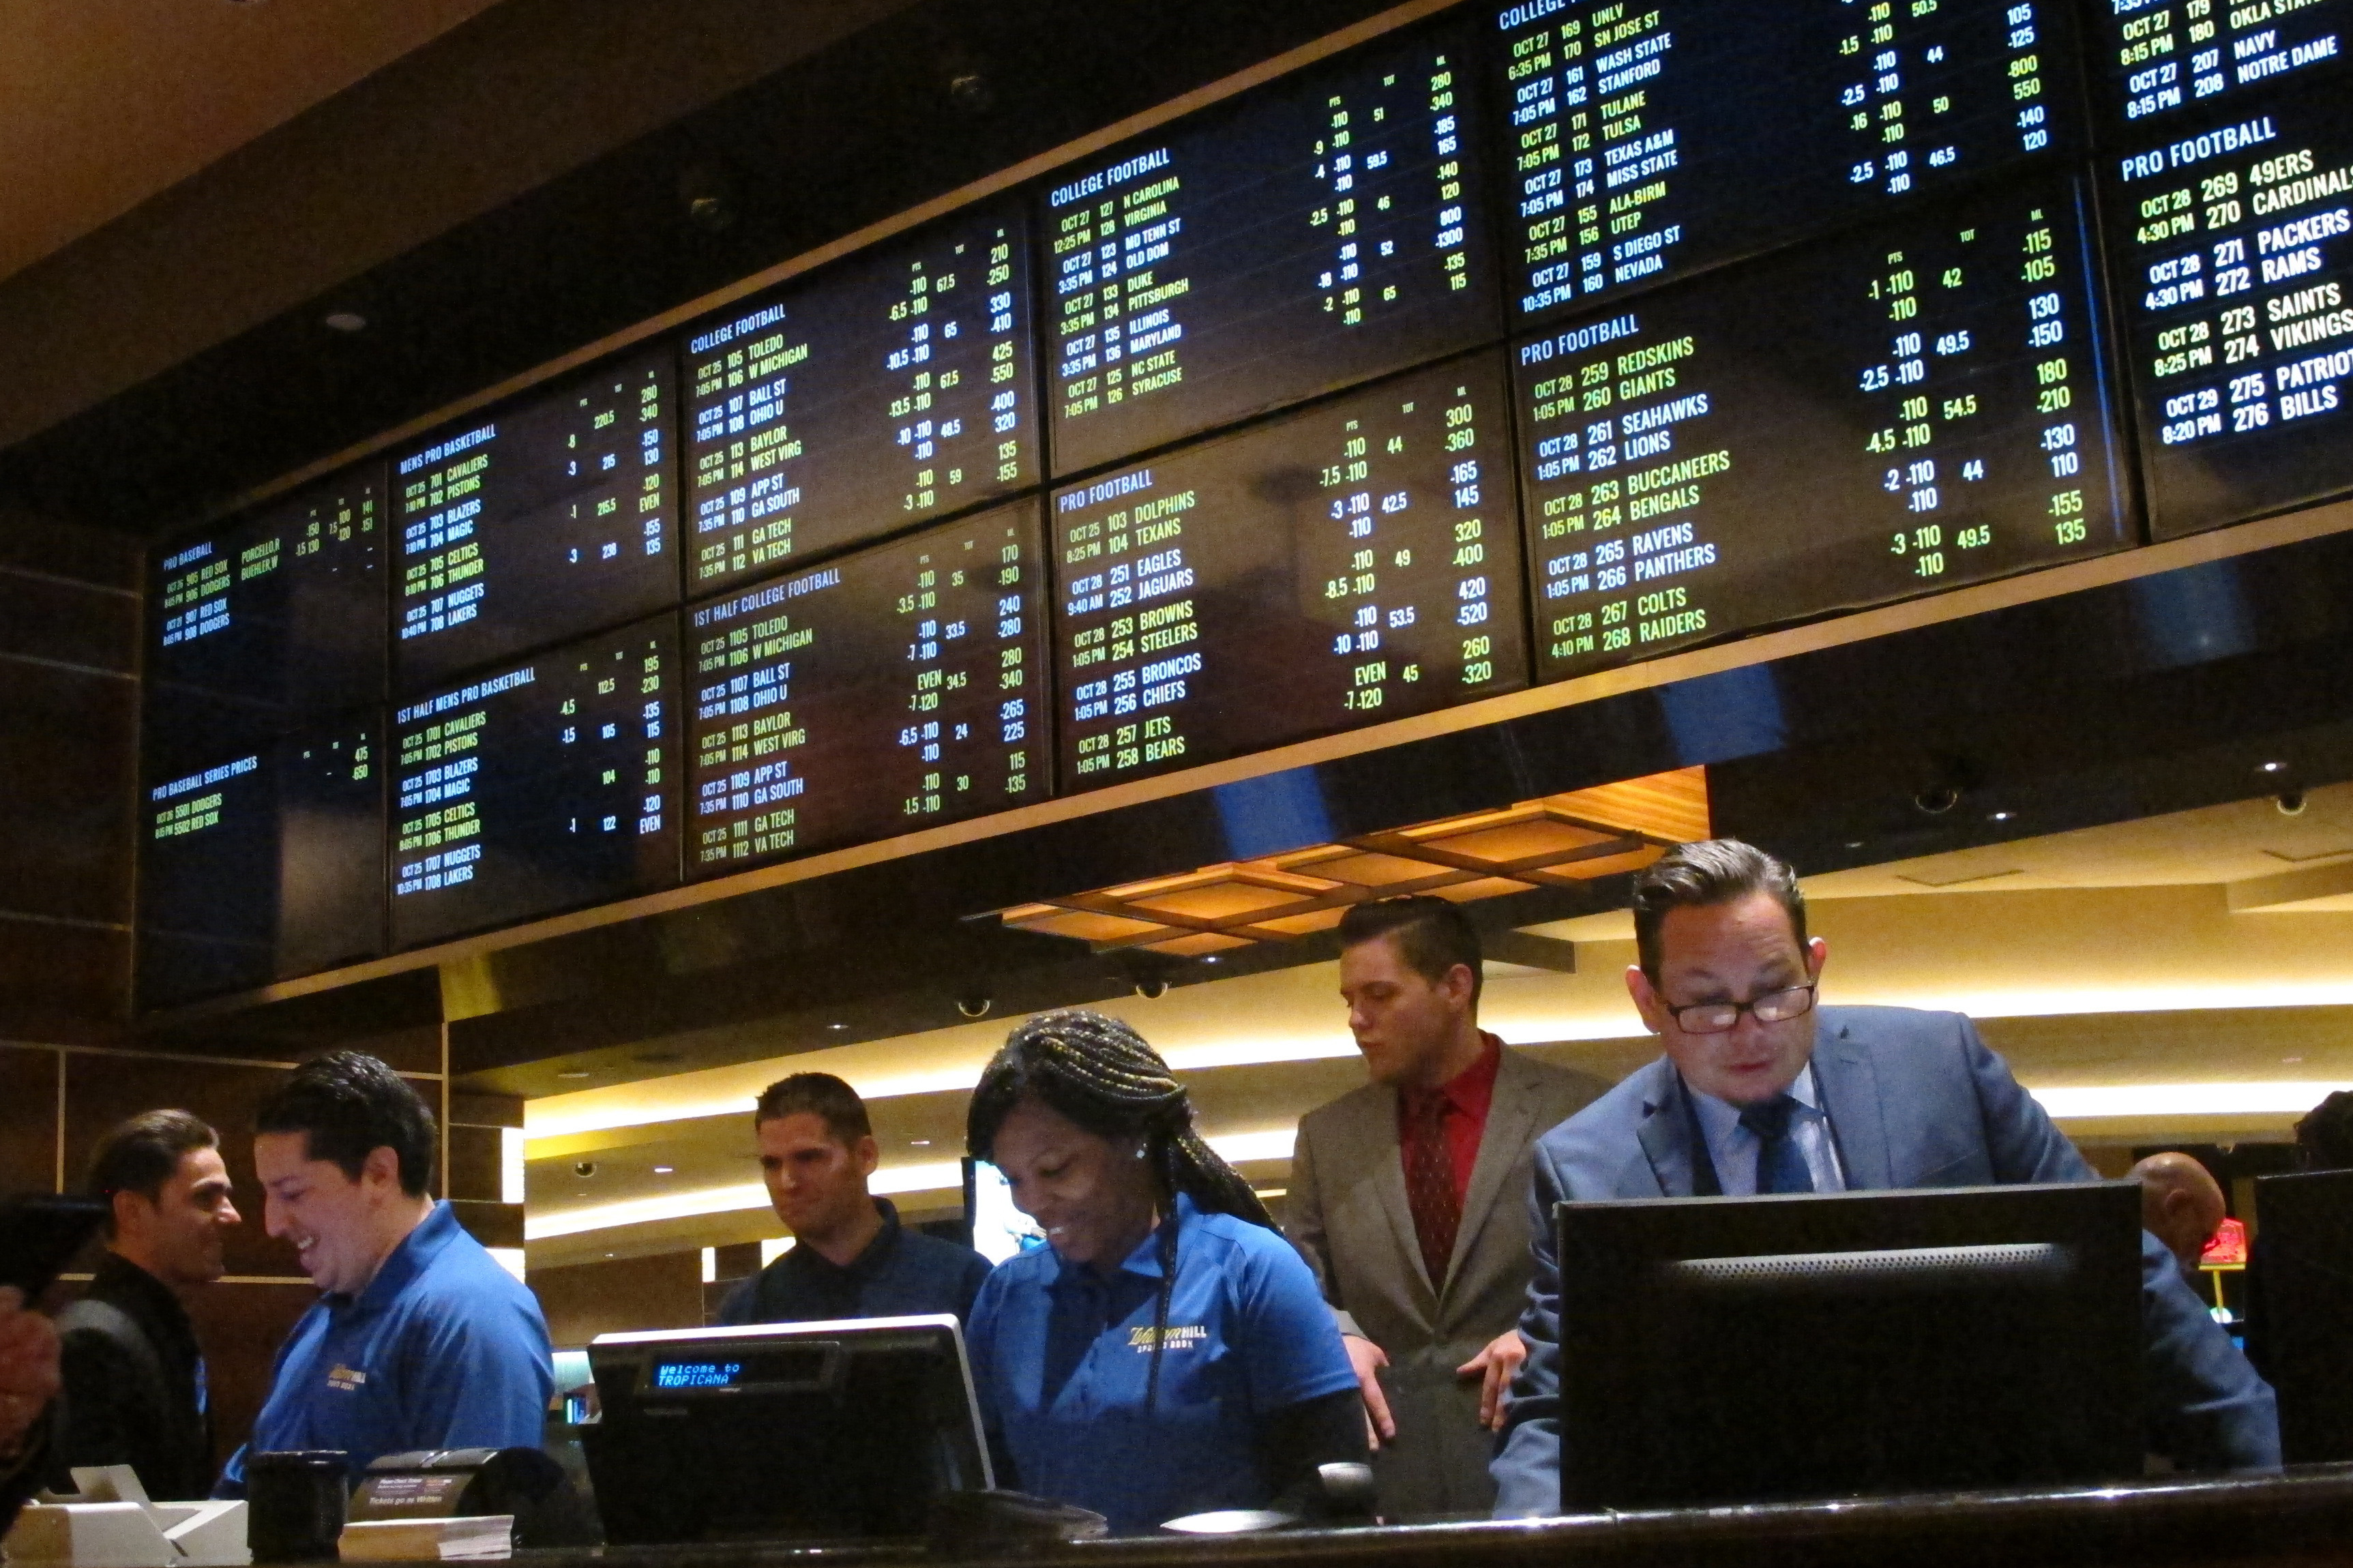 sports betting bust njuifile